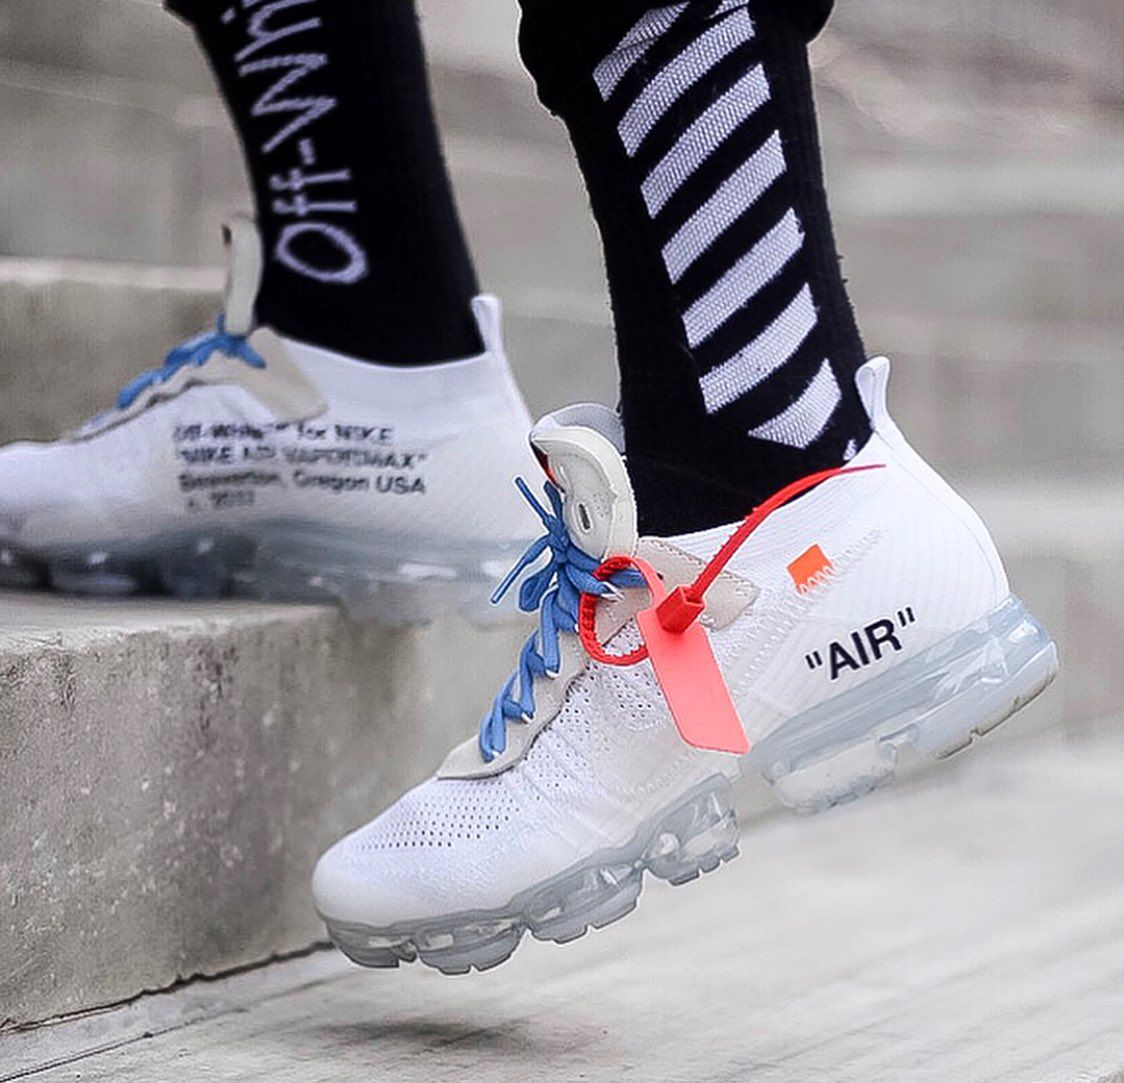 34cbcde706b8 Off-White Vapormaxes